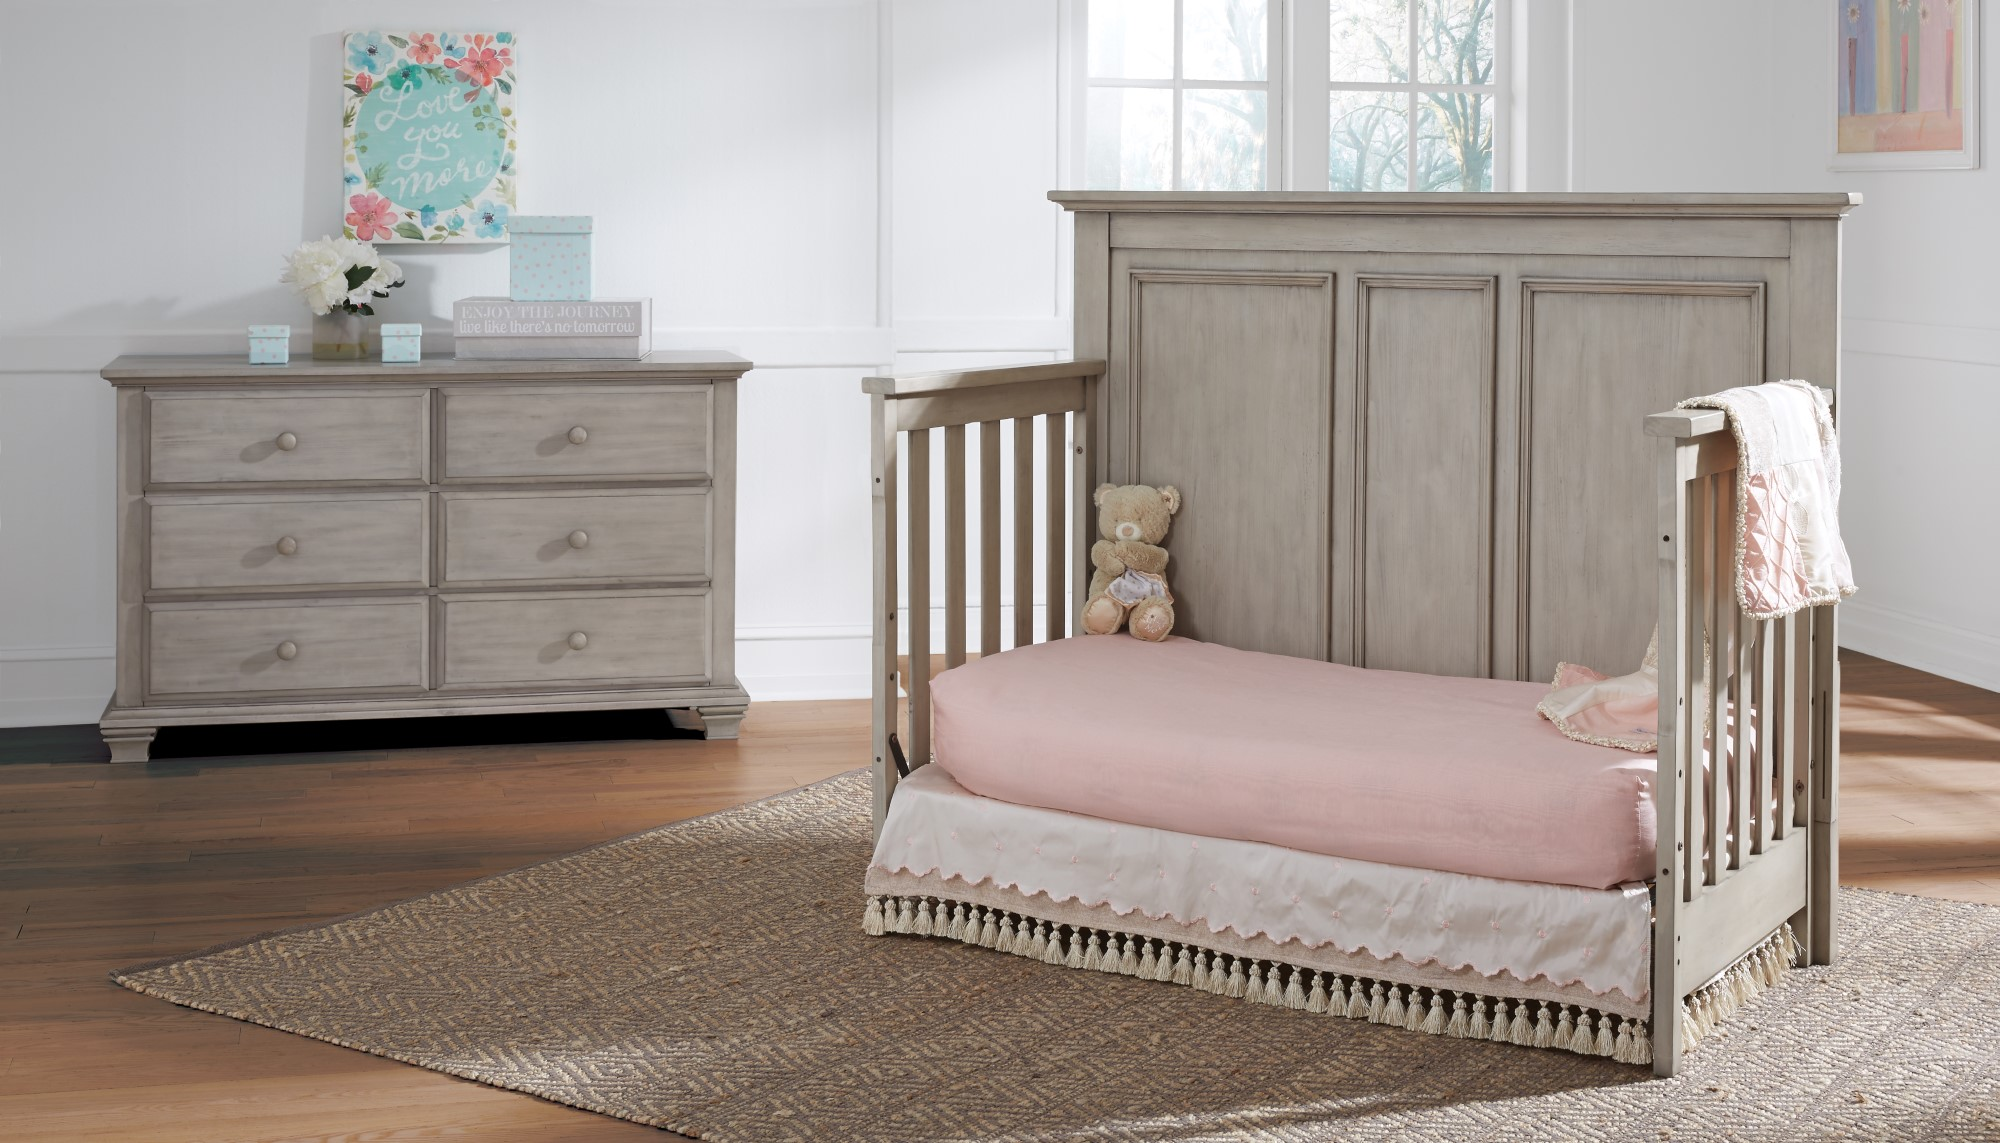 Kenilworth Stone Wash Collection Set Oxford Baby Amp Kids